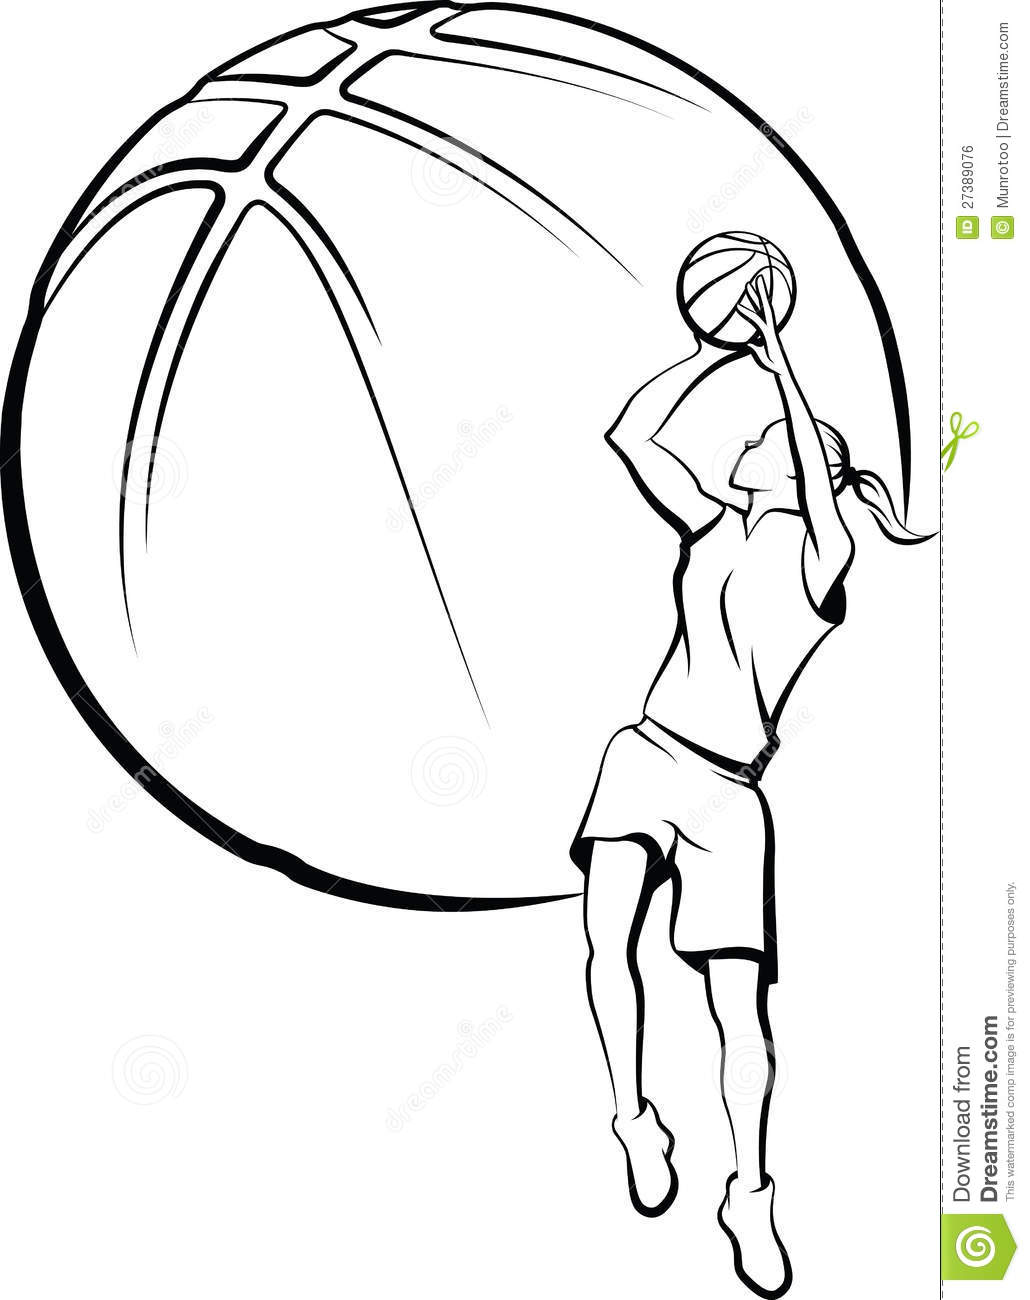 1030x1300 Drawing Clipart Basketball